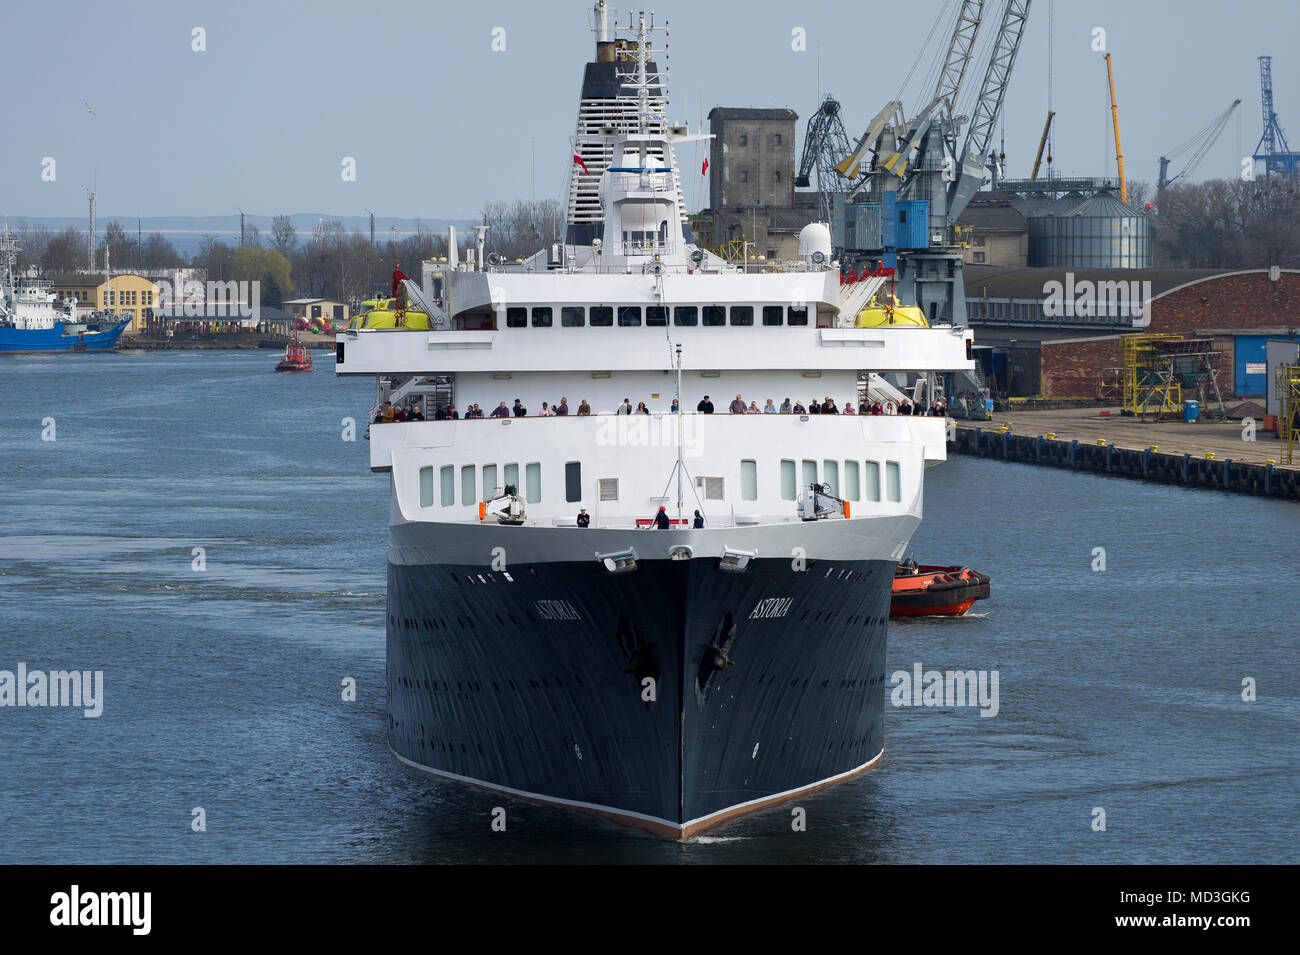 Gdansk, Poland. 18th April 2018. 160 meter long cruise ship MV Astoria started cruising season in Gdansk harbour in Gdansk, Poland. April 18th 2018. Built in 1948 as Stockholm is the oldest cruise ship in the world. Known for causing sea crash with famous Andrea Doria line ship in 1956 causing its sunk © Wojciech Strozyk / Alamy News Live Stock Photo